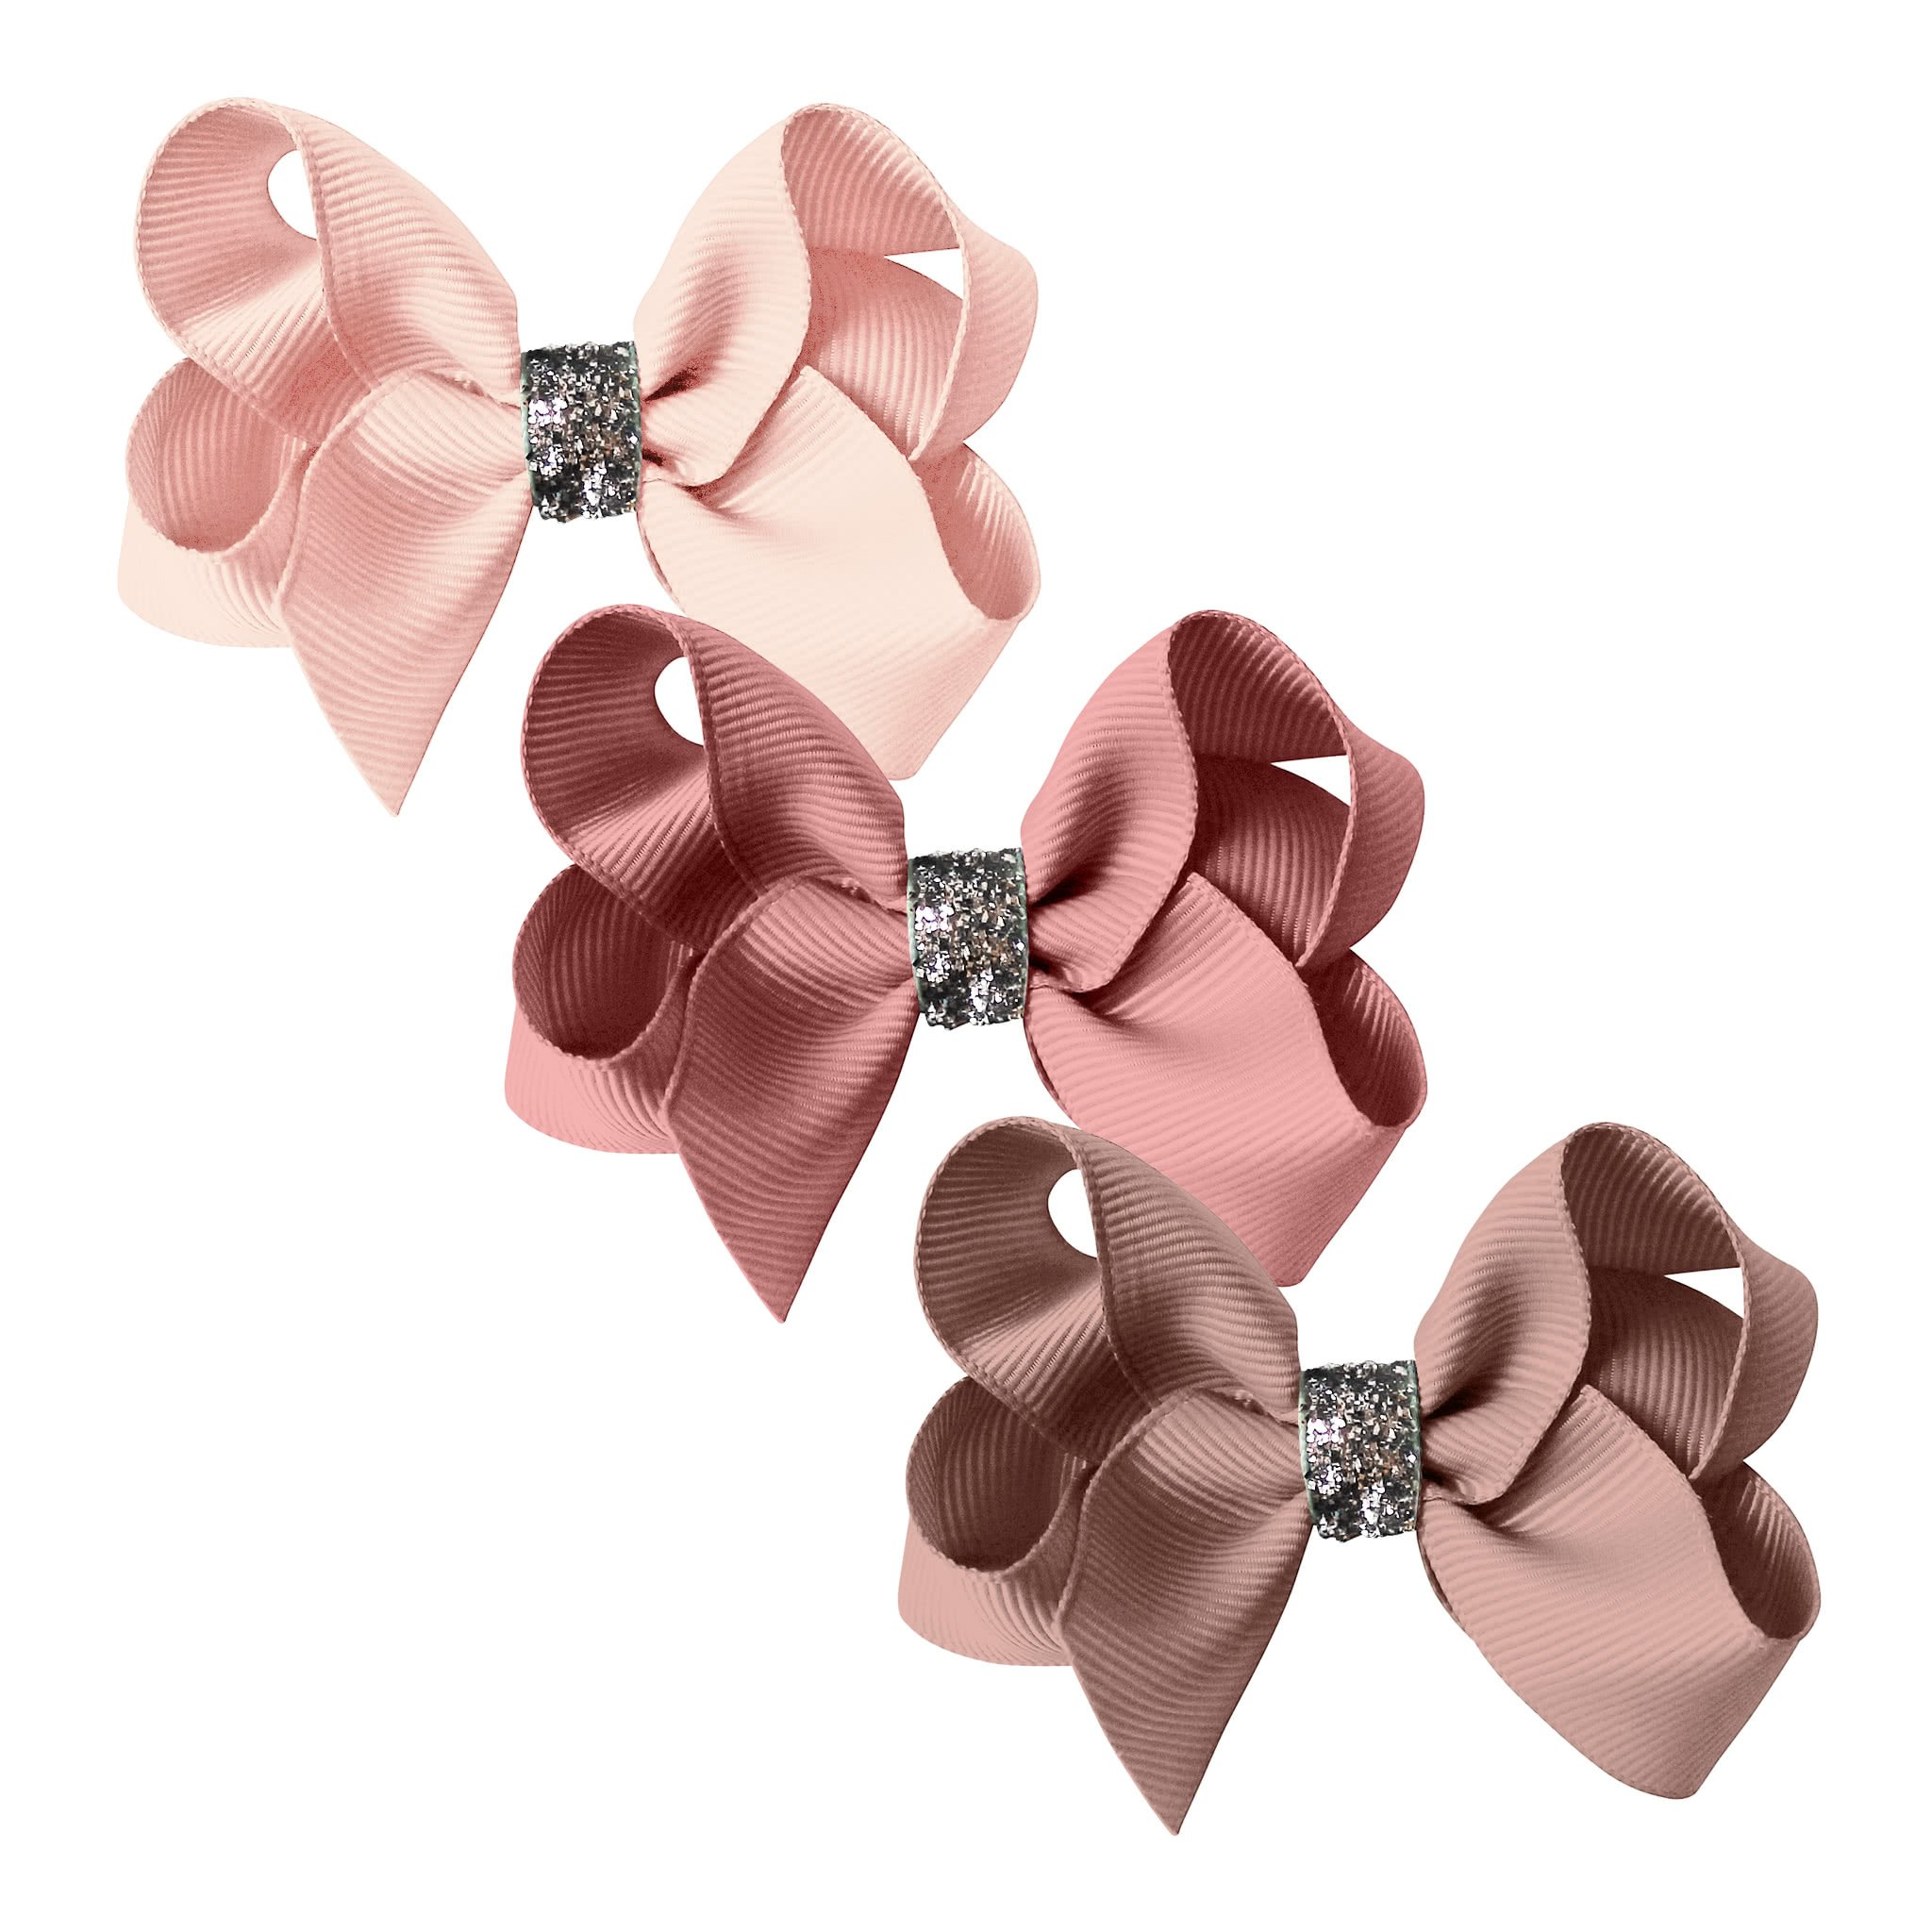 Image of Milledeux® gift set - Glitter Collection - 3 Medium boutique bows - pinks